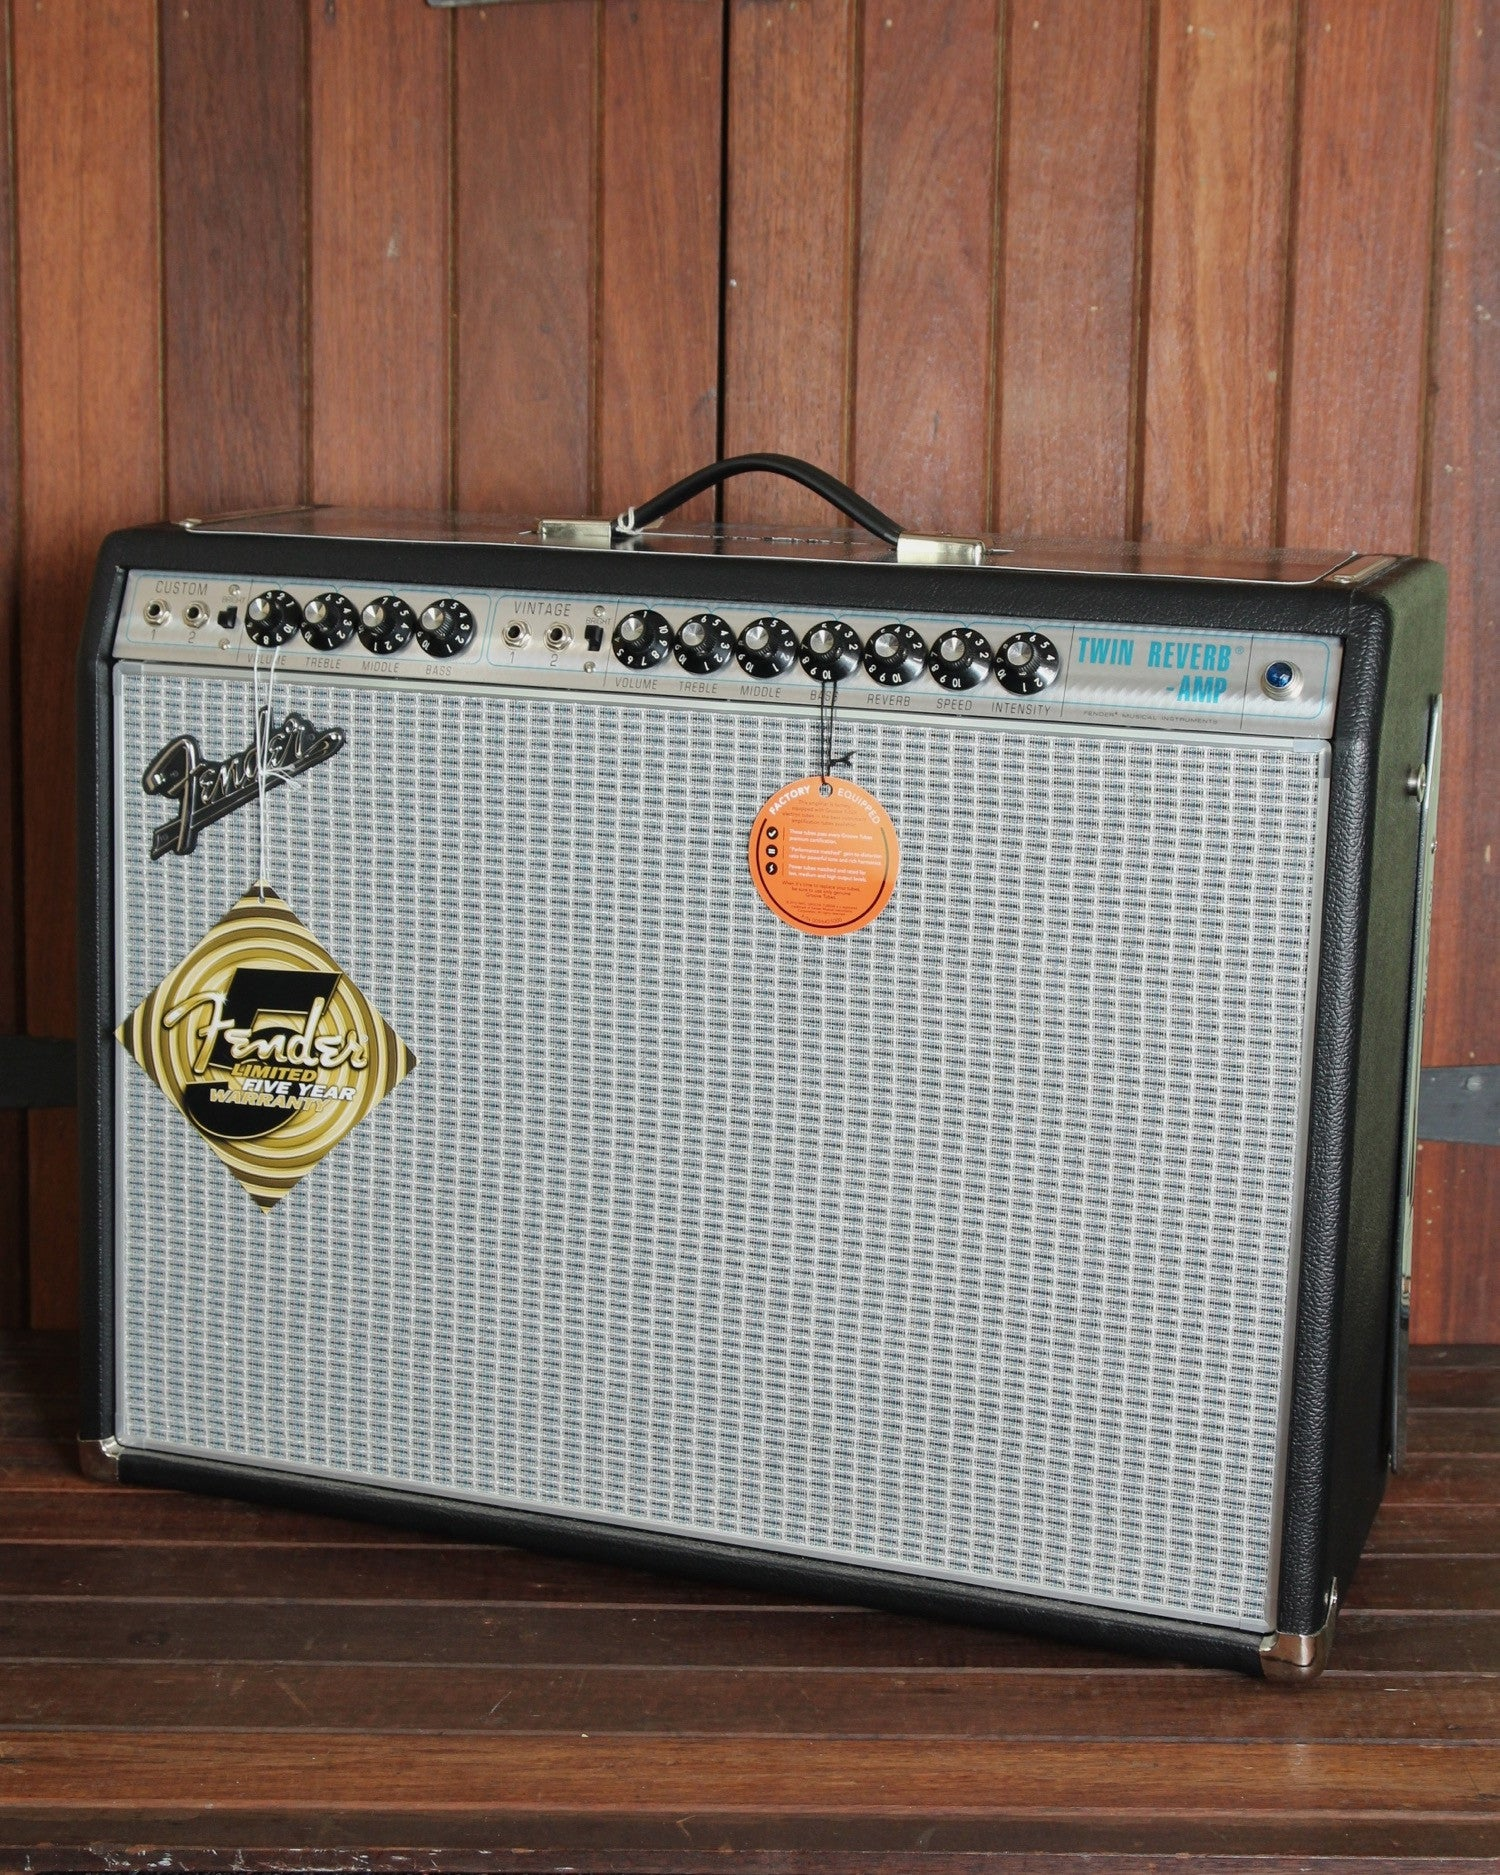 Fender '68 Custom Twin Reverb Amplifier - The Rock Inn - 4